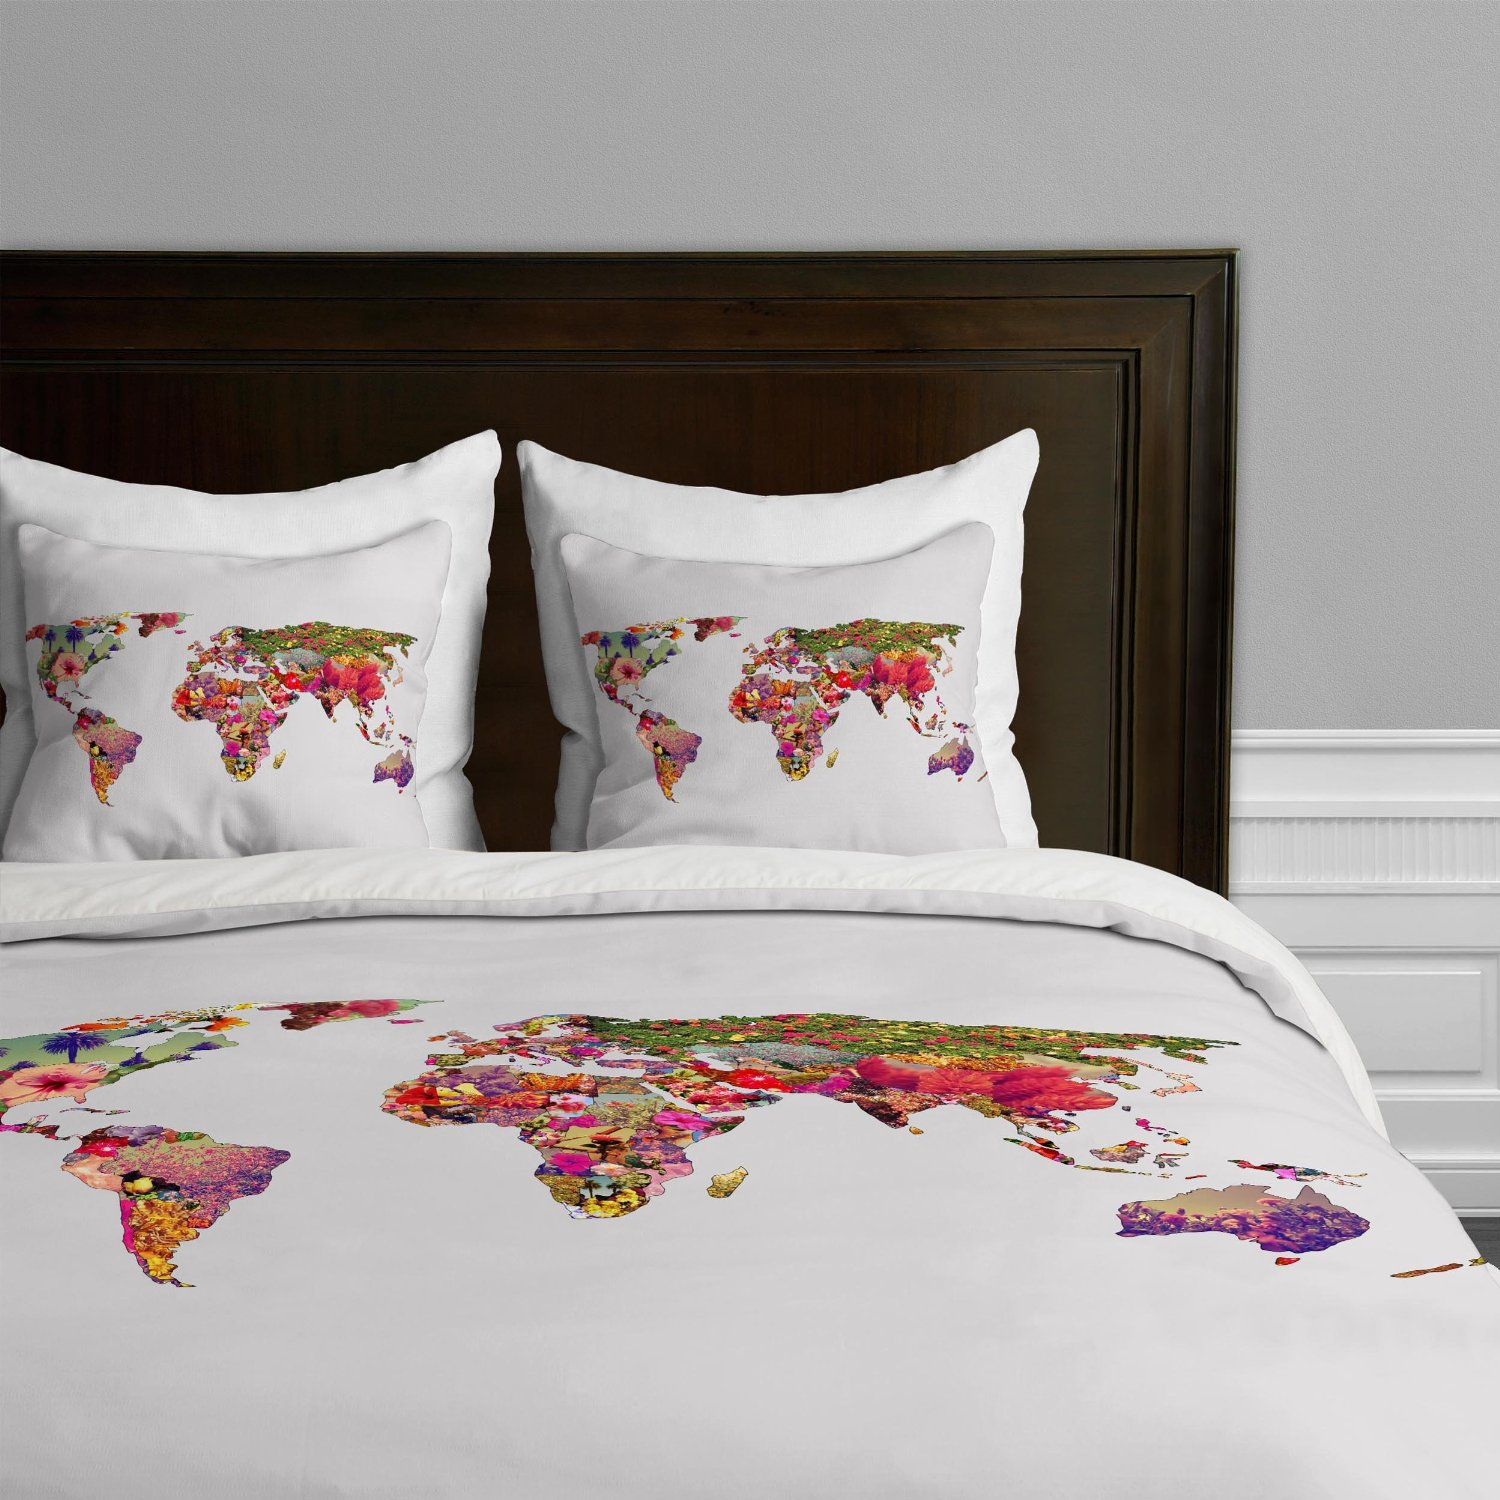 Rooms To Go Bedroom Sets Queen Total Fab World Amp Map Themed Comforter And Bedding Sets